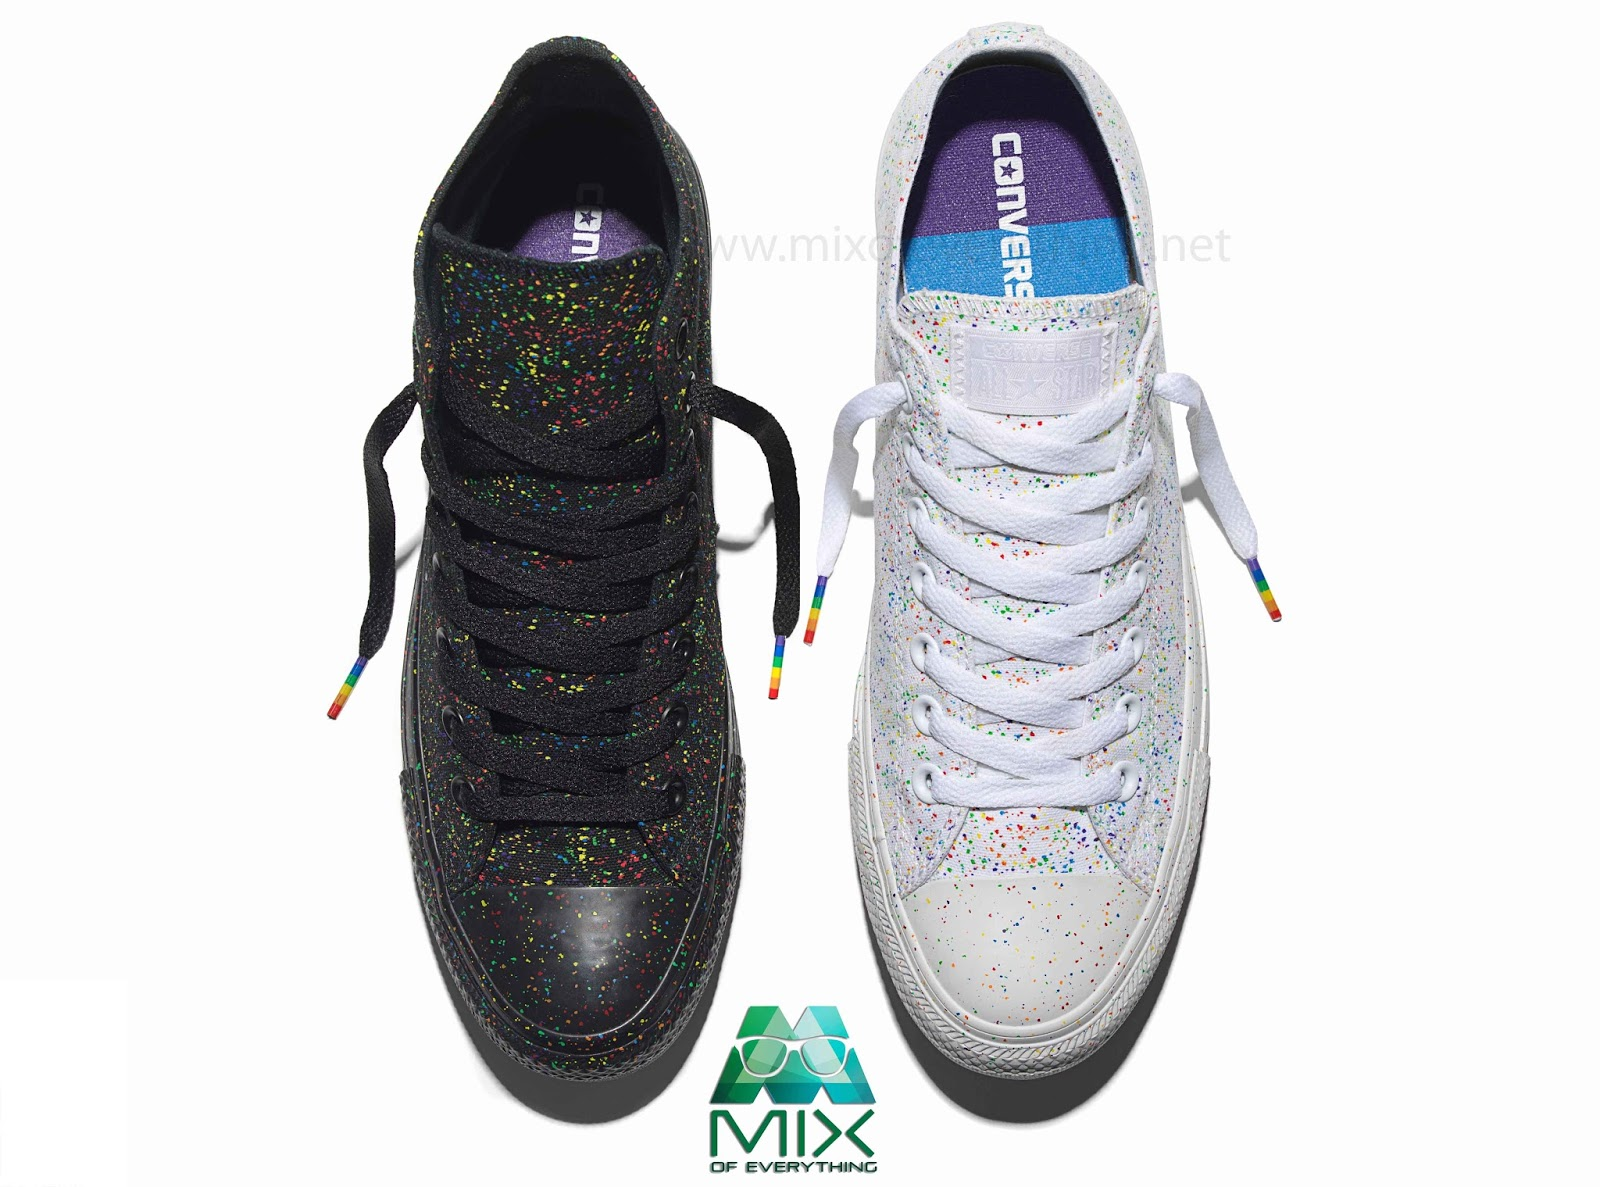 0821148fd7bf 2016 Converse Pride Collection - Hello! Welcome to my blog!